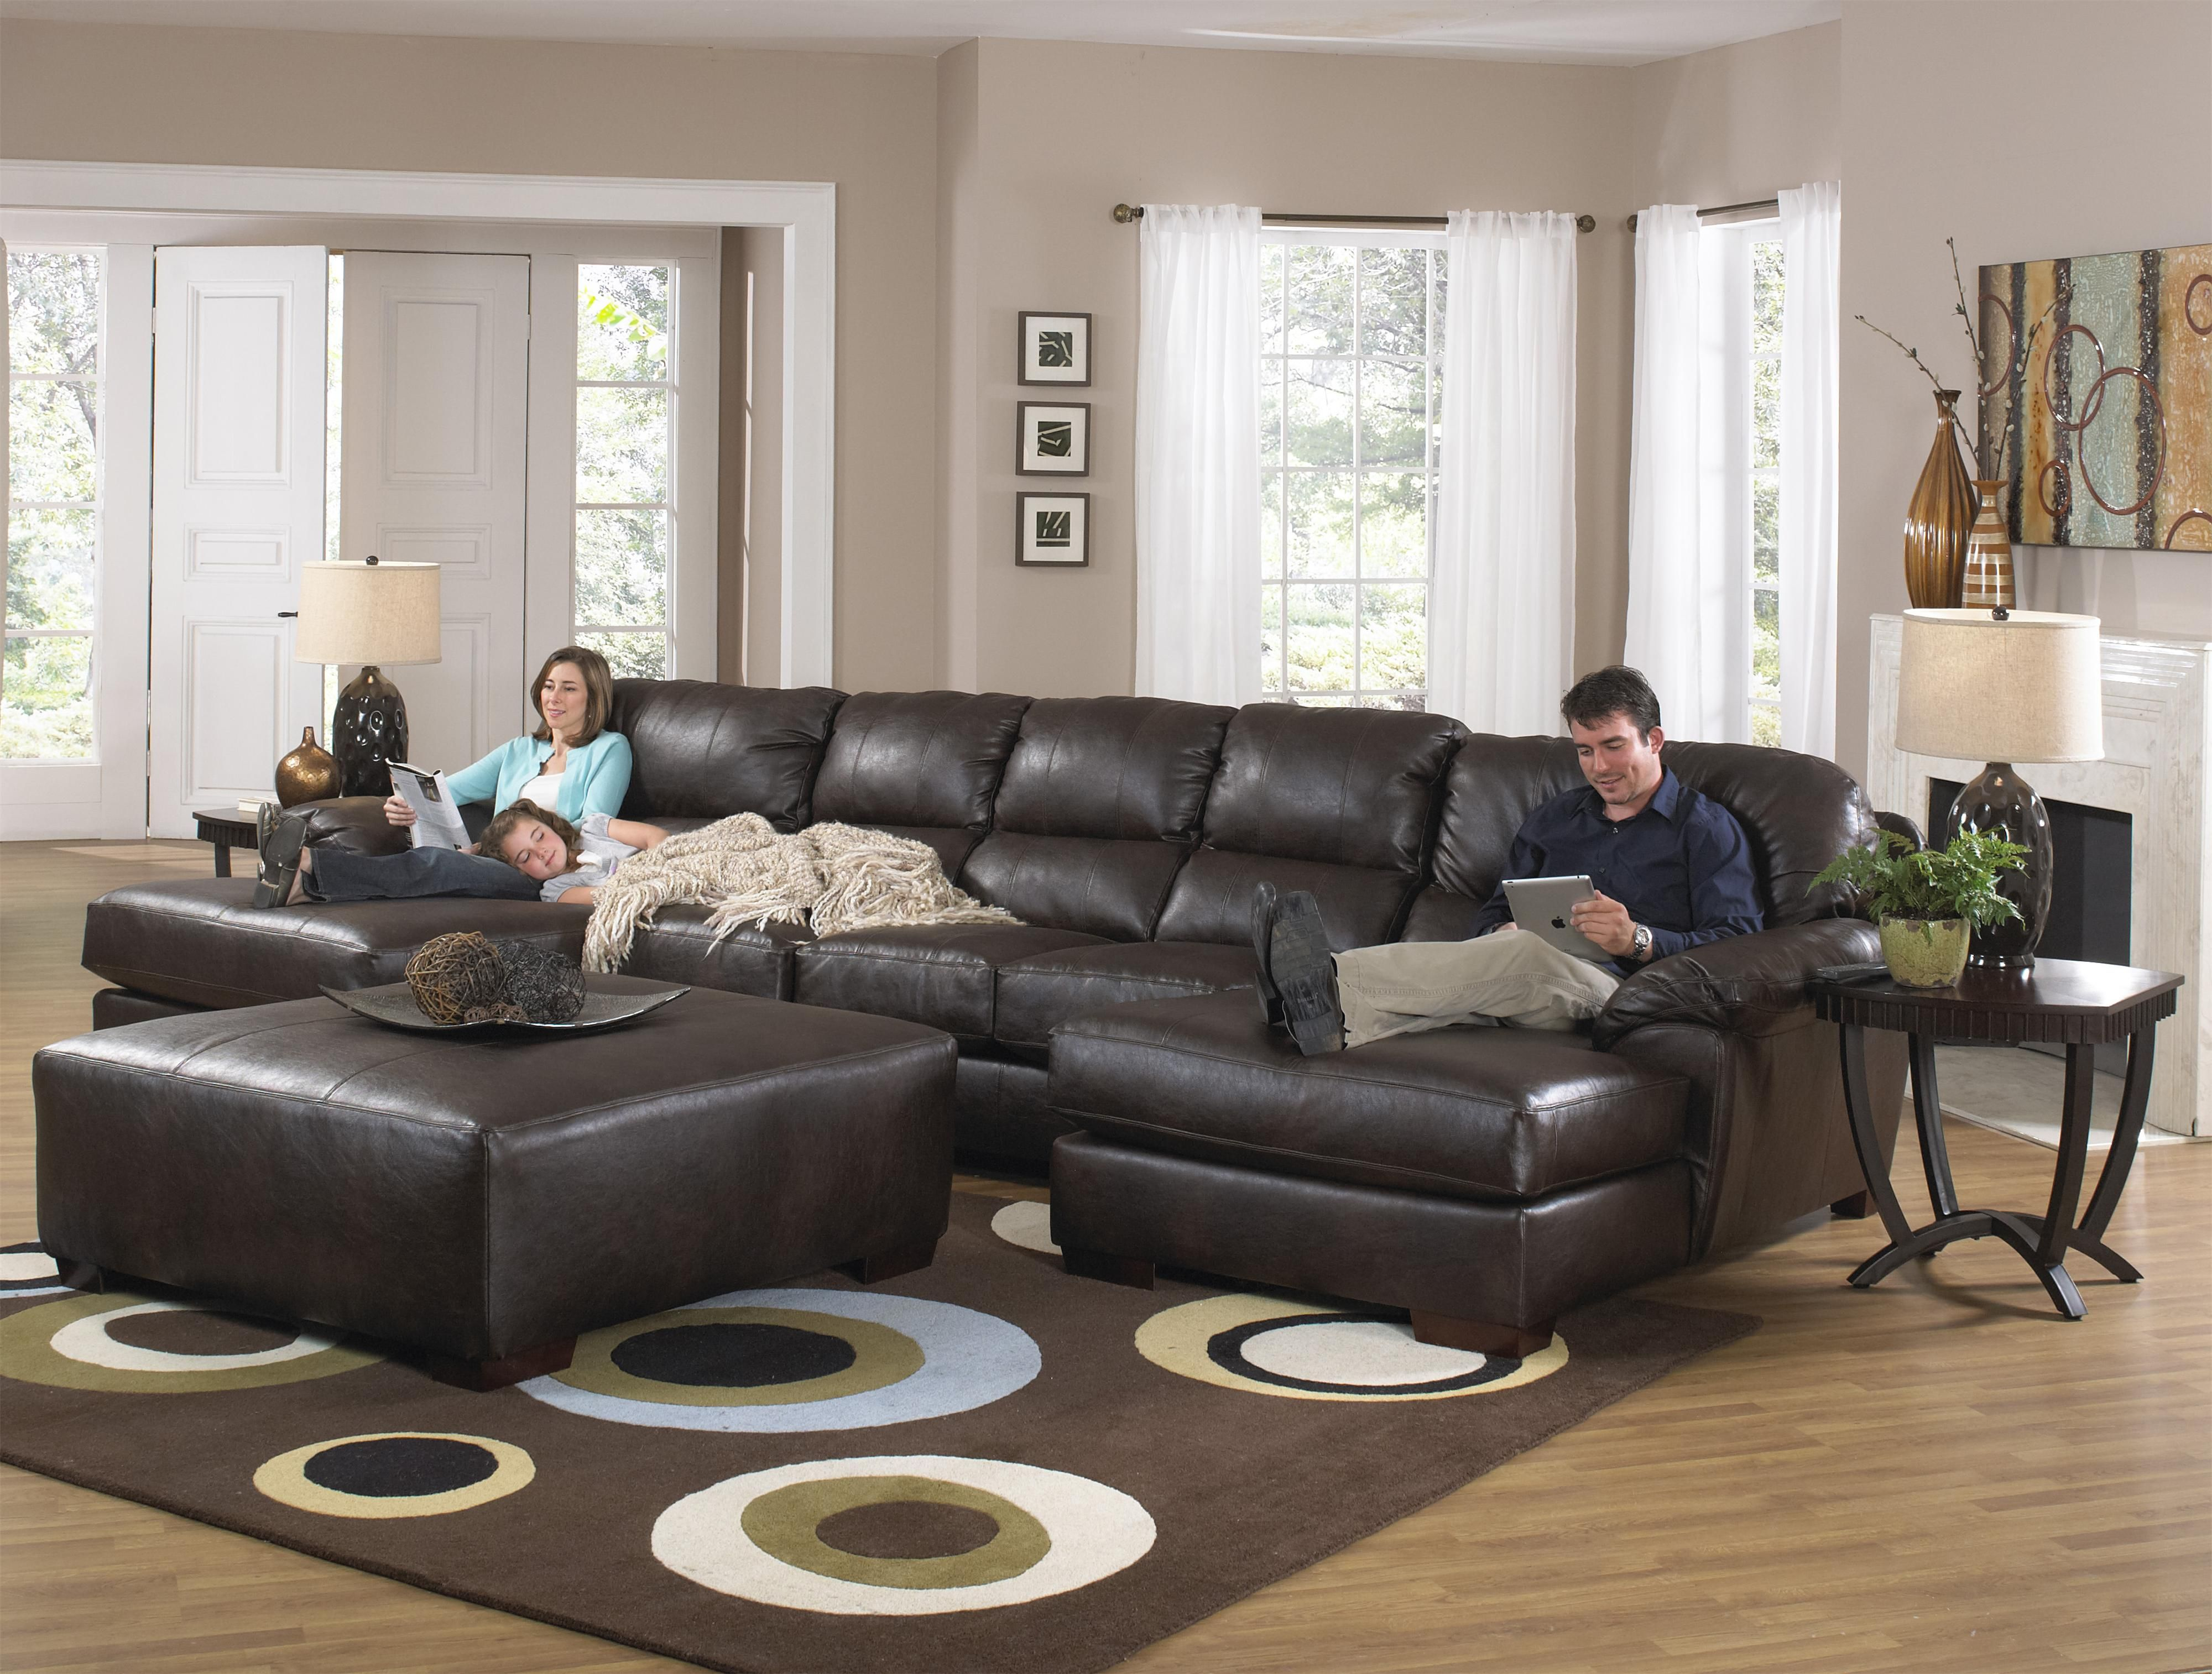 Lawson Two Chaise Sectional Sofa By Jackson Furniture At Dream